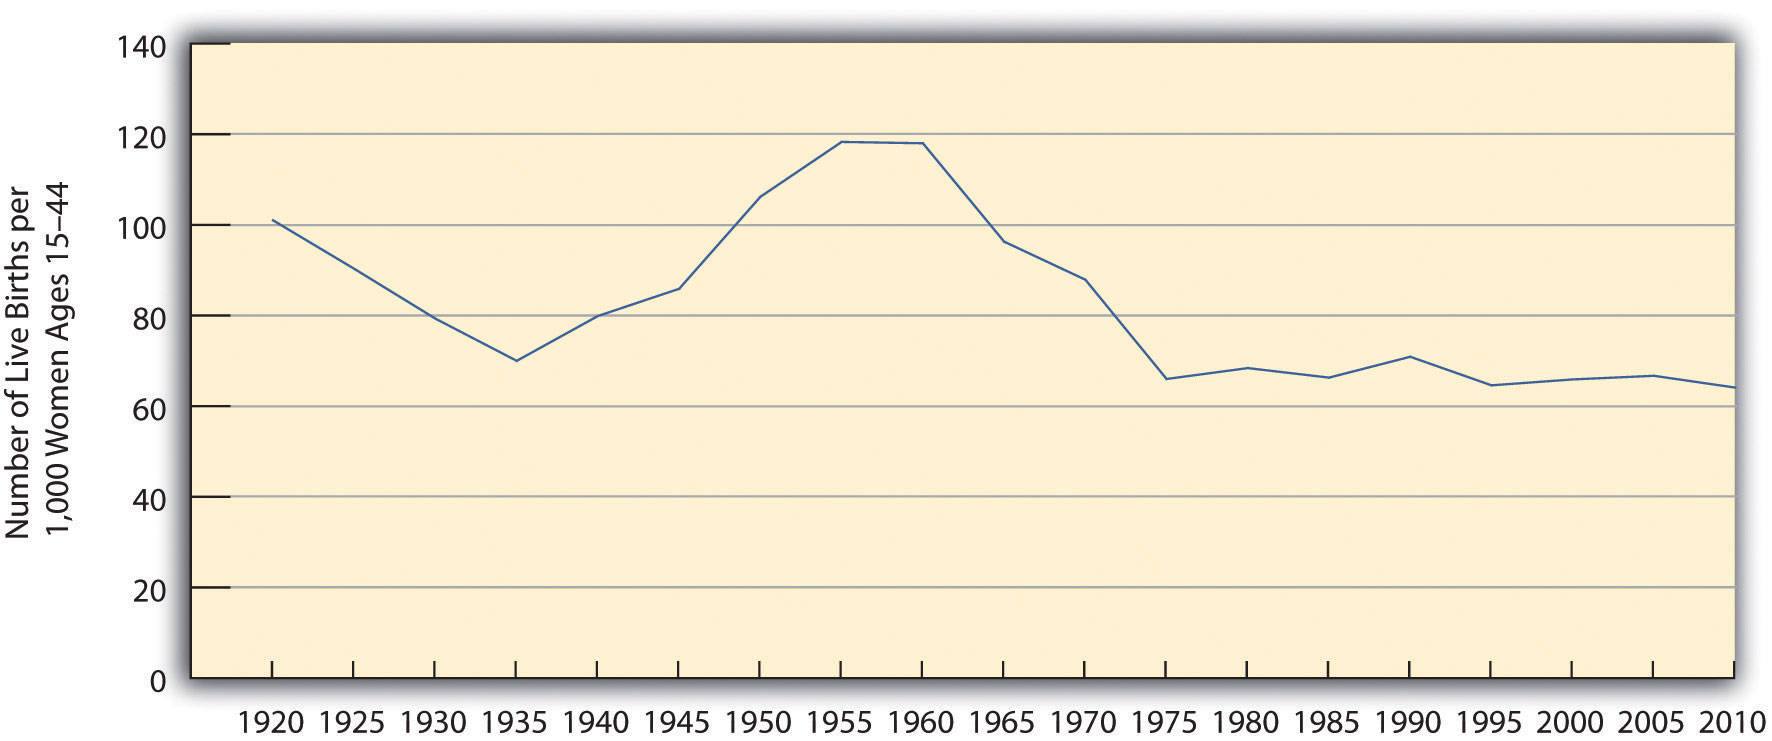 US General Fertility Rate. The graph decreases from 1920 to 1935, then increases until 1960. From there it falls again until 1975, then essentially plateaus until 2010